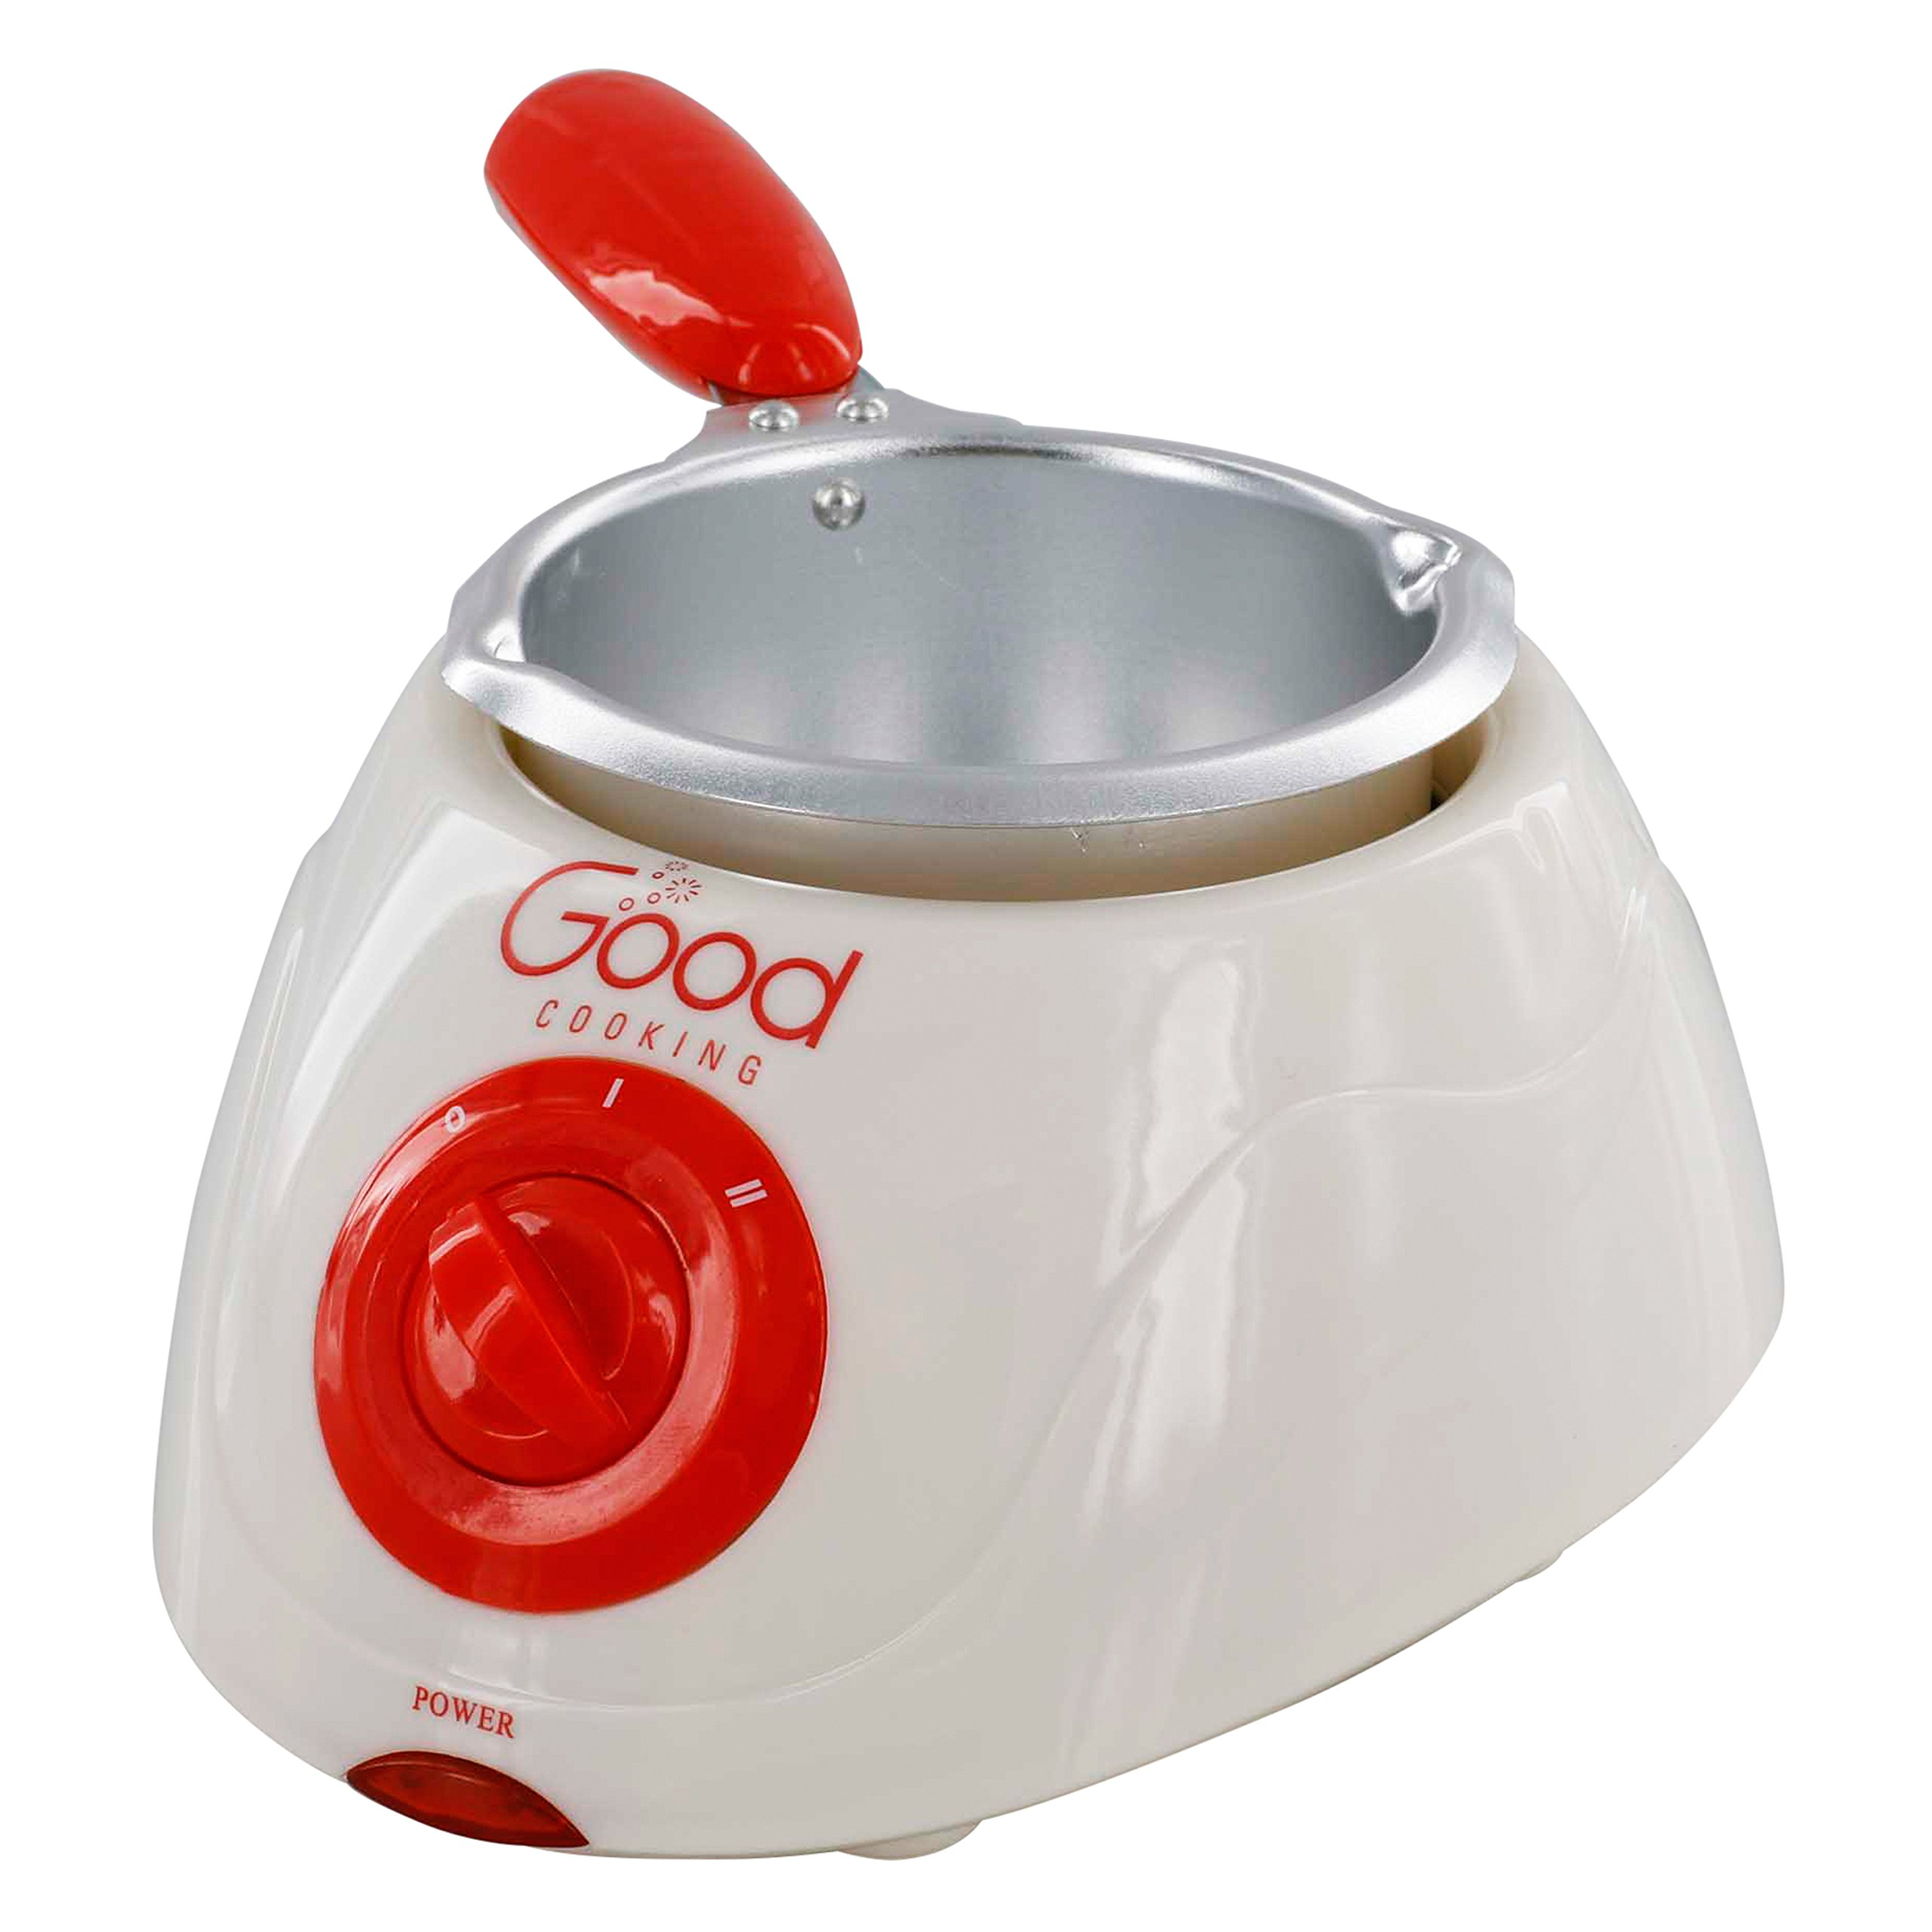 Chocolate Melting Pot- Electric Chocolate Fondue Fountain Pot with over 30 Free Accessories and 12 Recipes by Good Cooking (Image #5)